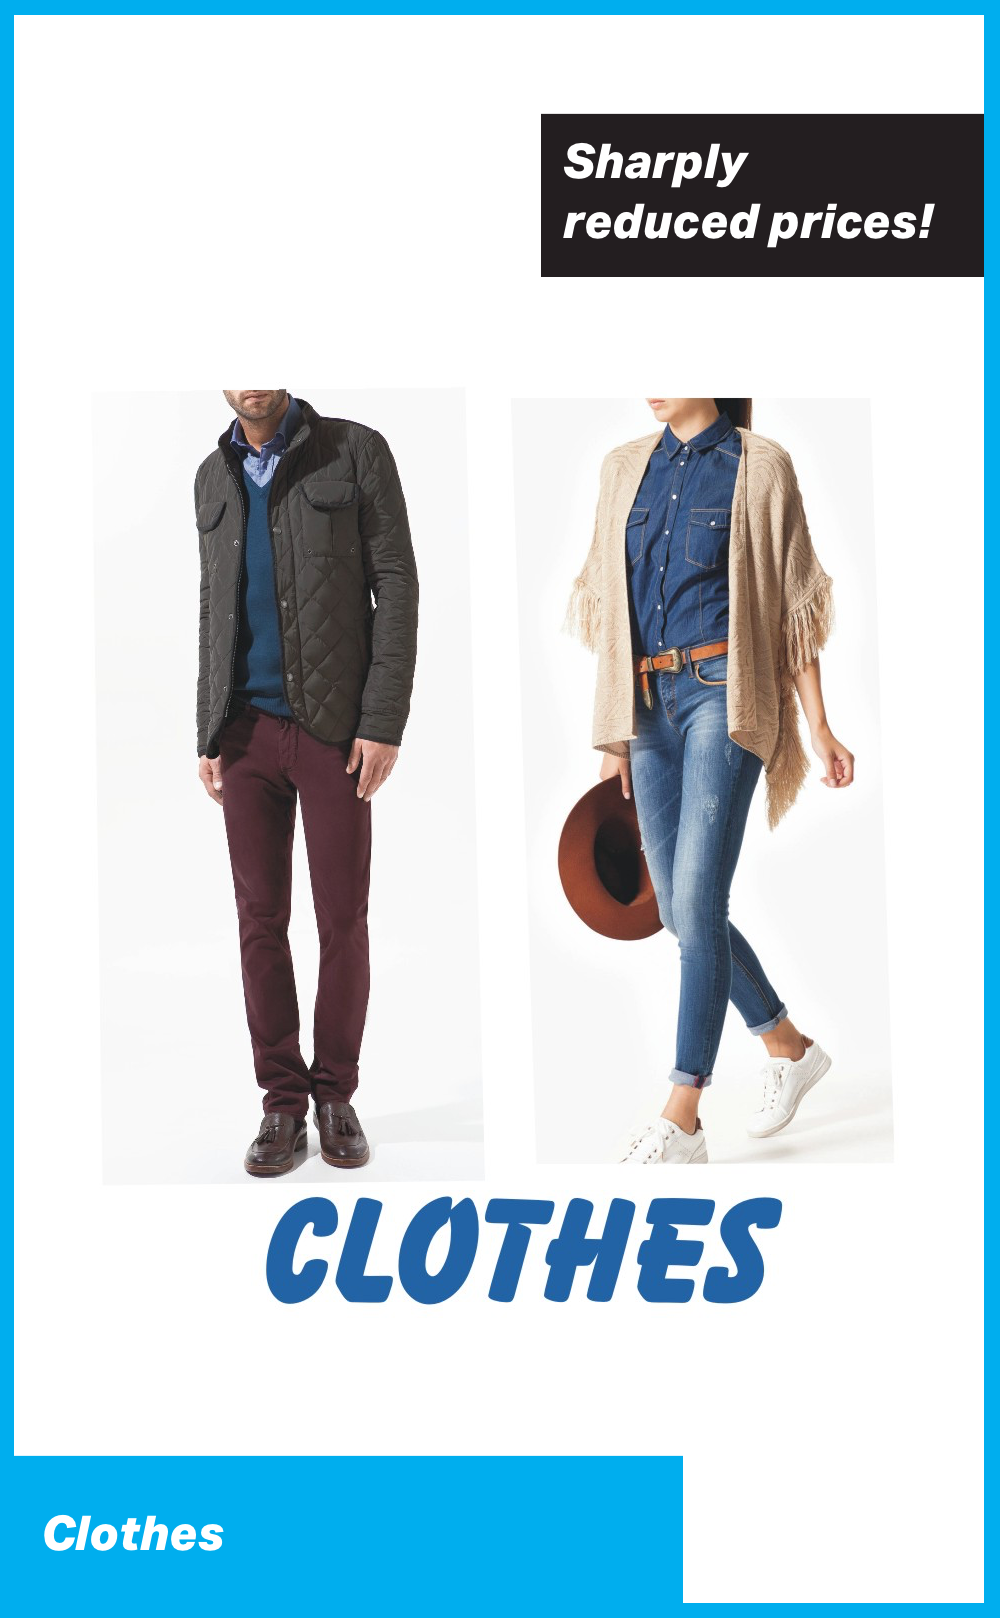 Clothes at Sharply Reduced Prices!